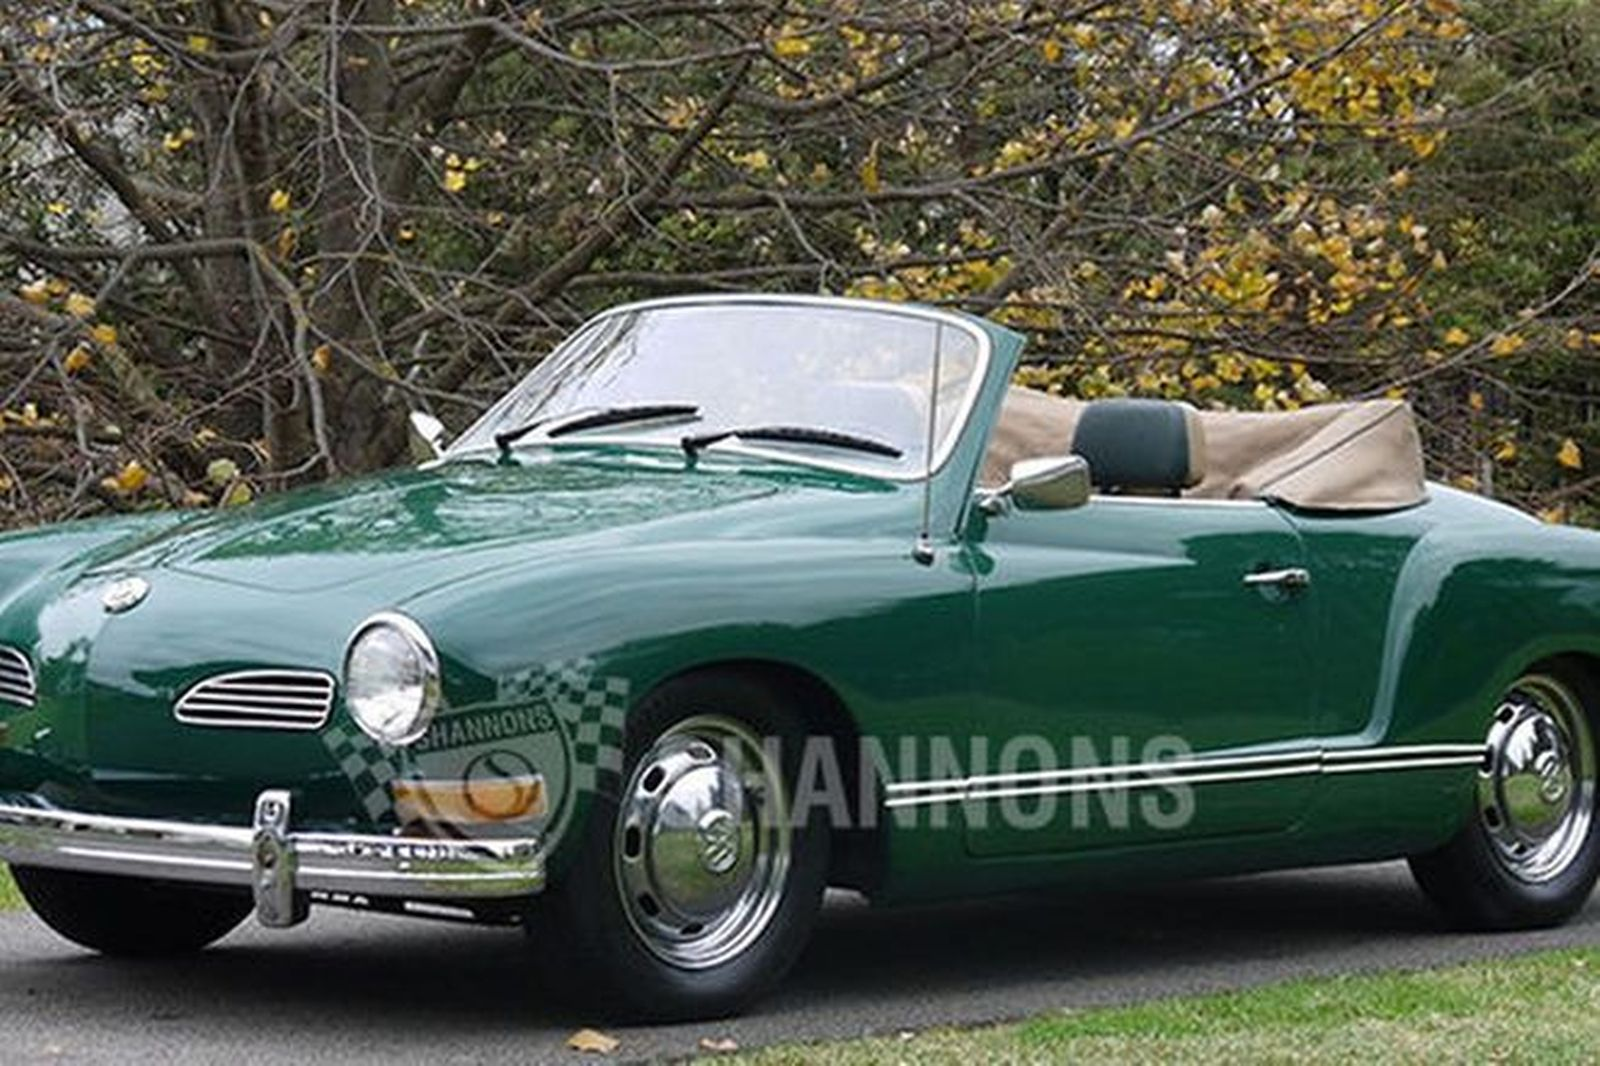 Sold Volkswagen Karmann Ghia Convertible Lhd Auctions Lot 9 Shannons